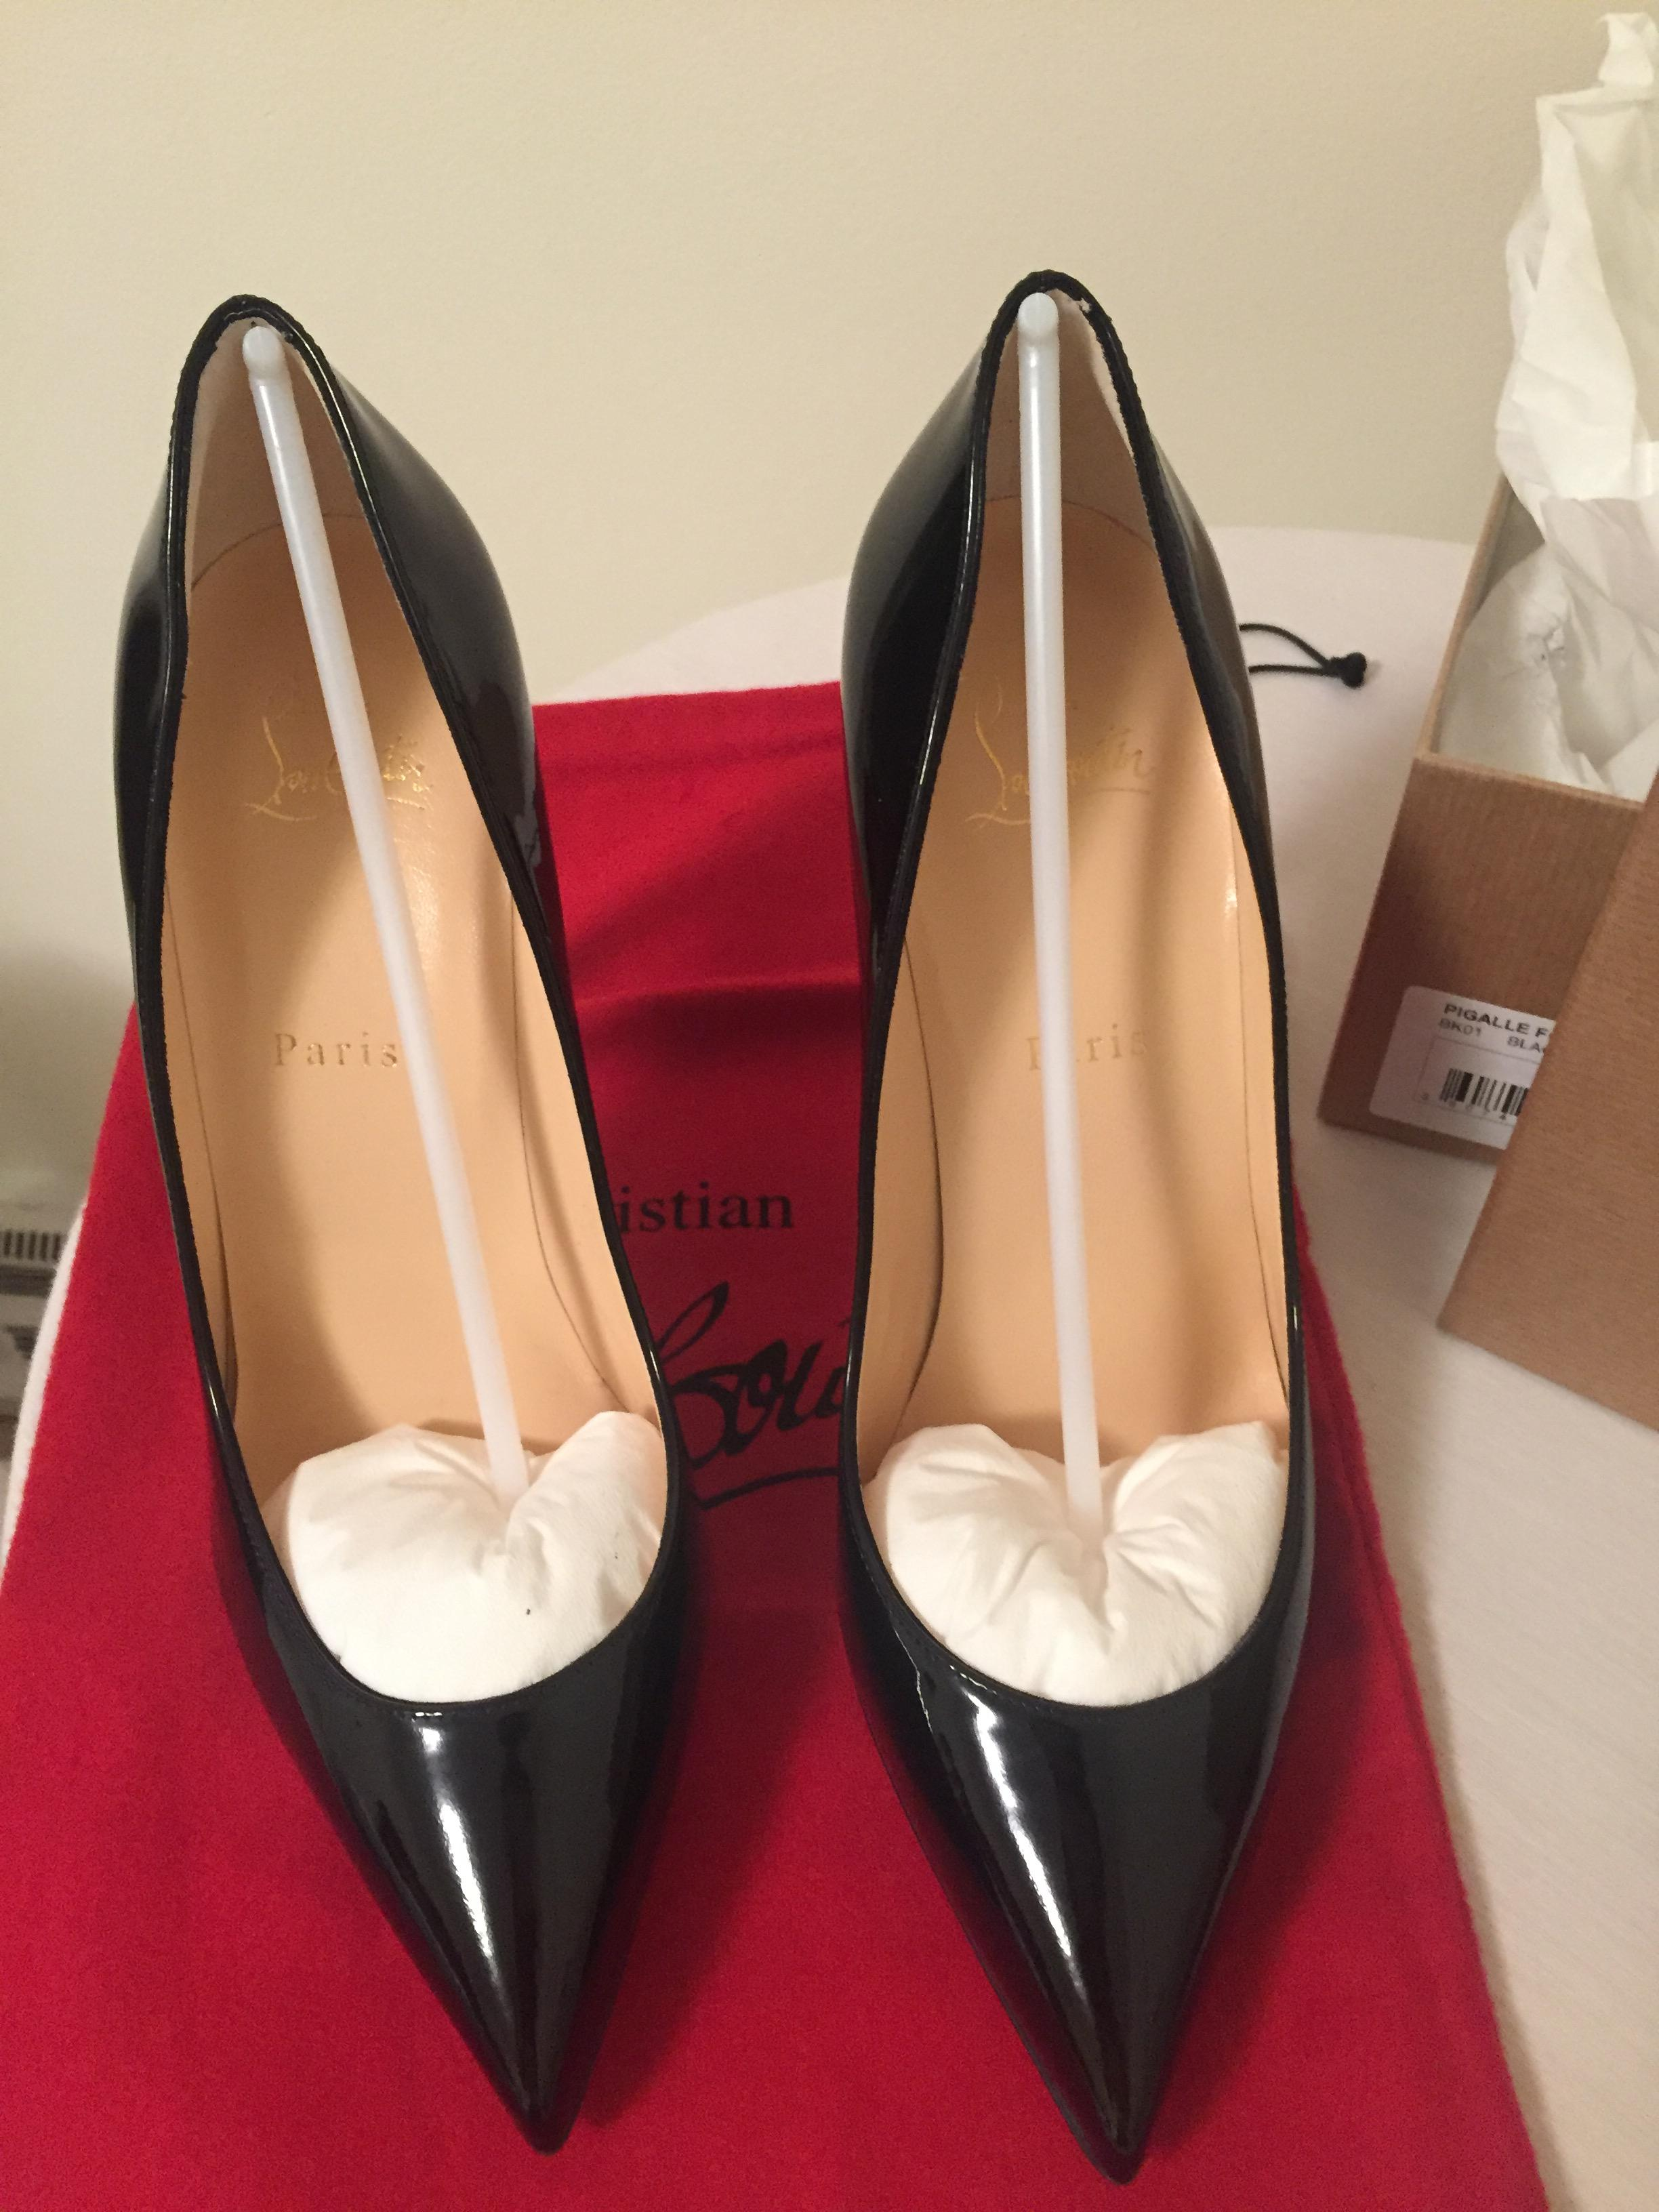 9d181935a2 Christian Louboutin Black Patent Pigalle Follies Leather 100mm Pumps Size EU  34 (Approx. US 4) Regular (M, B) - Tradesy